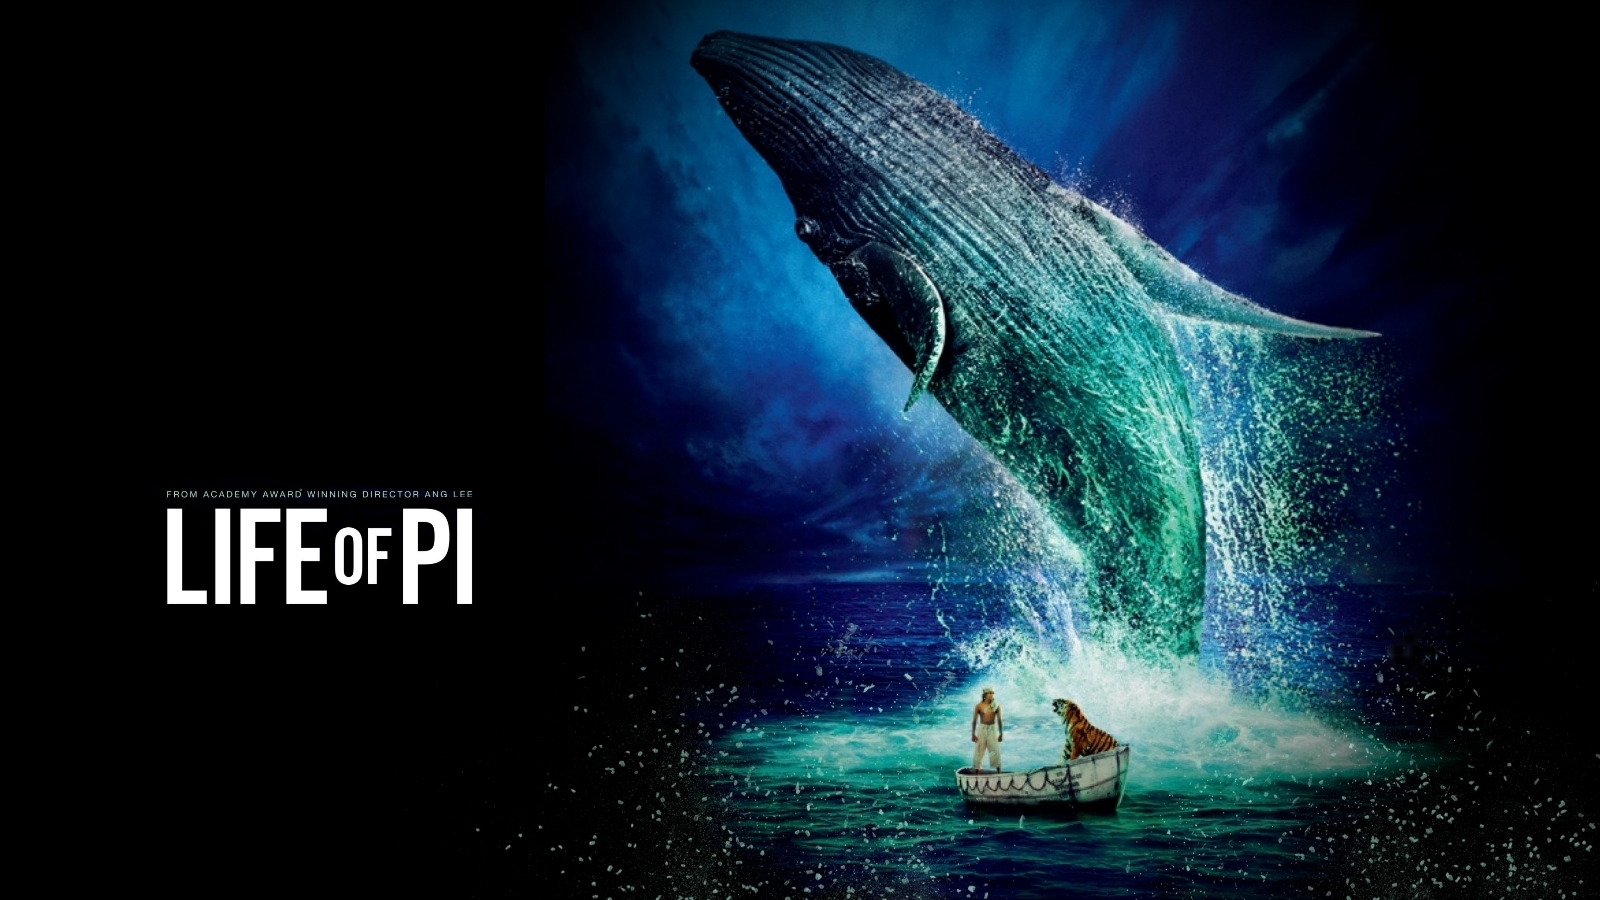 Life of pi 2012 bluray 720p bluray quality download for Life of pi family